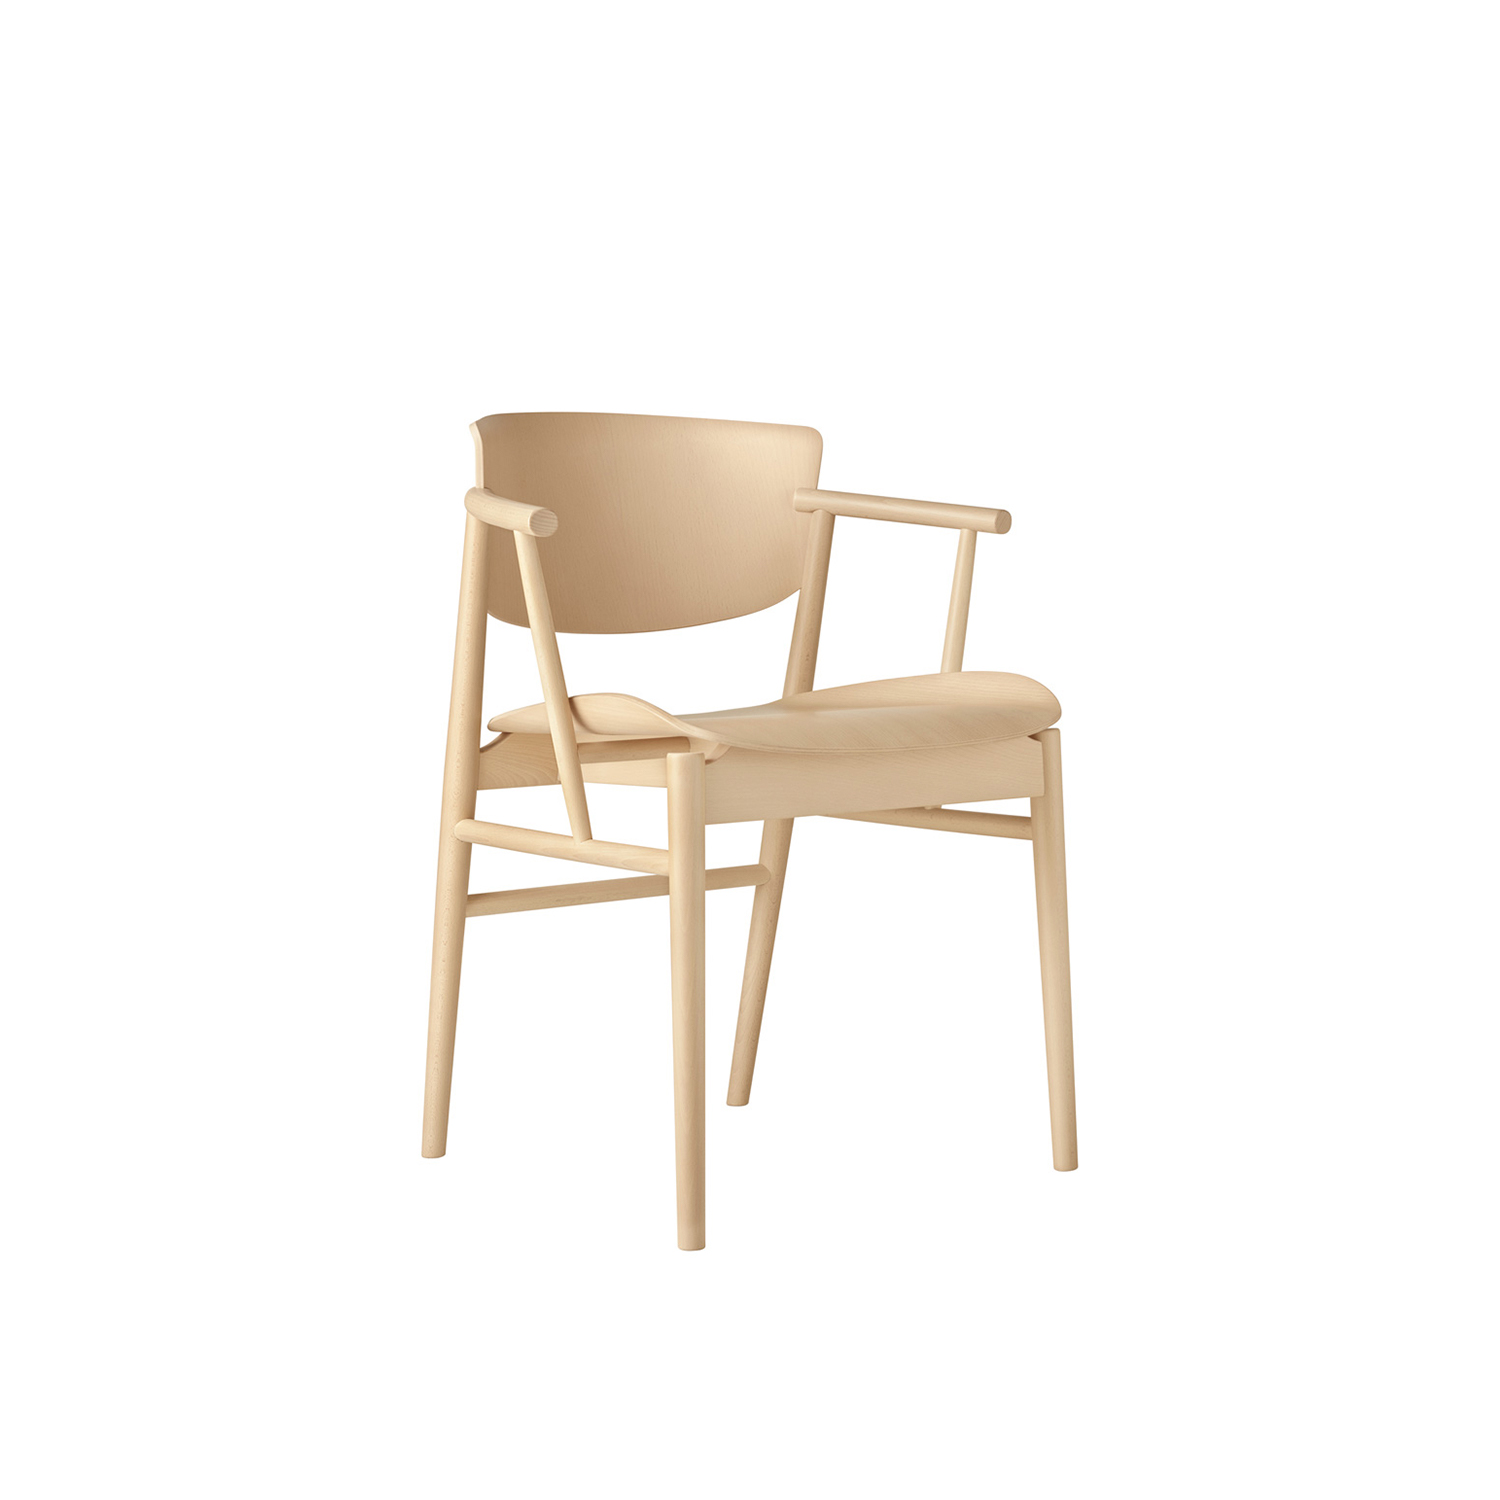 N01 Armchair - Created by the merging of Danish and Japanese aesthetics and purity, N01 brings back nature and embraces today's modern life. A life where the dining room is not only a place to enjoy a meal but it's also a place to be productive, a place for conversation, a place to relax from a busy workday or just everyday life. 